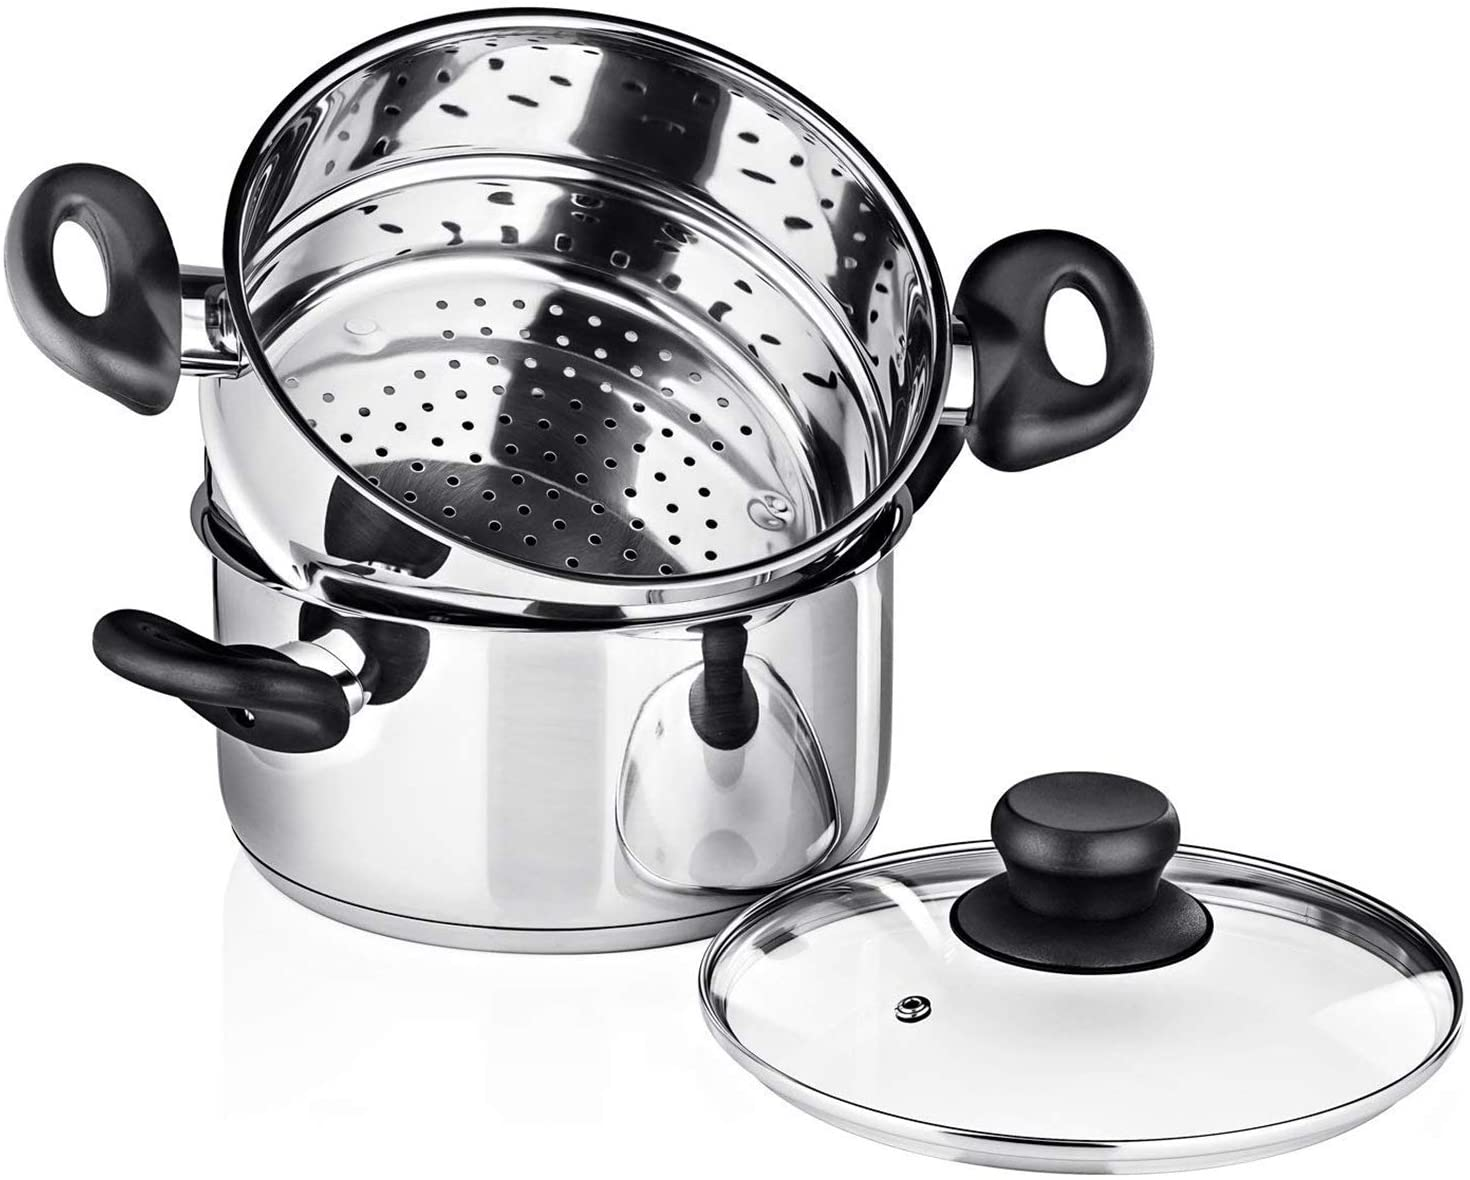 Chef's Star Steamer pot for Cooking, 3 Piece Steamer Cookware, 2 Tier Stove Steamer for Kitchen Cookware Sets.